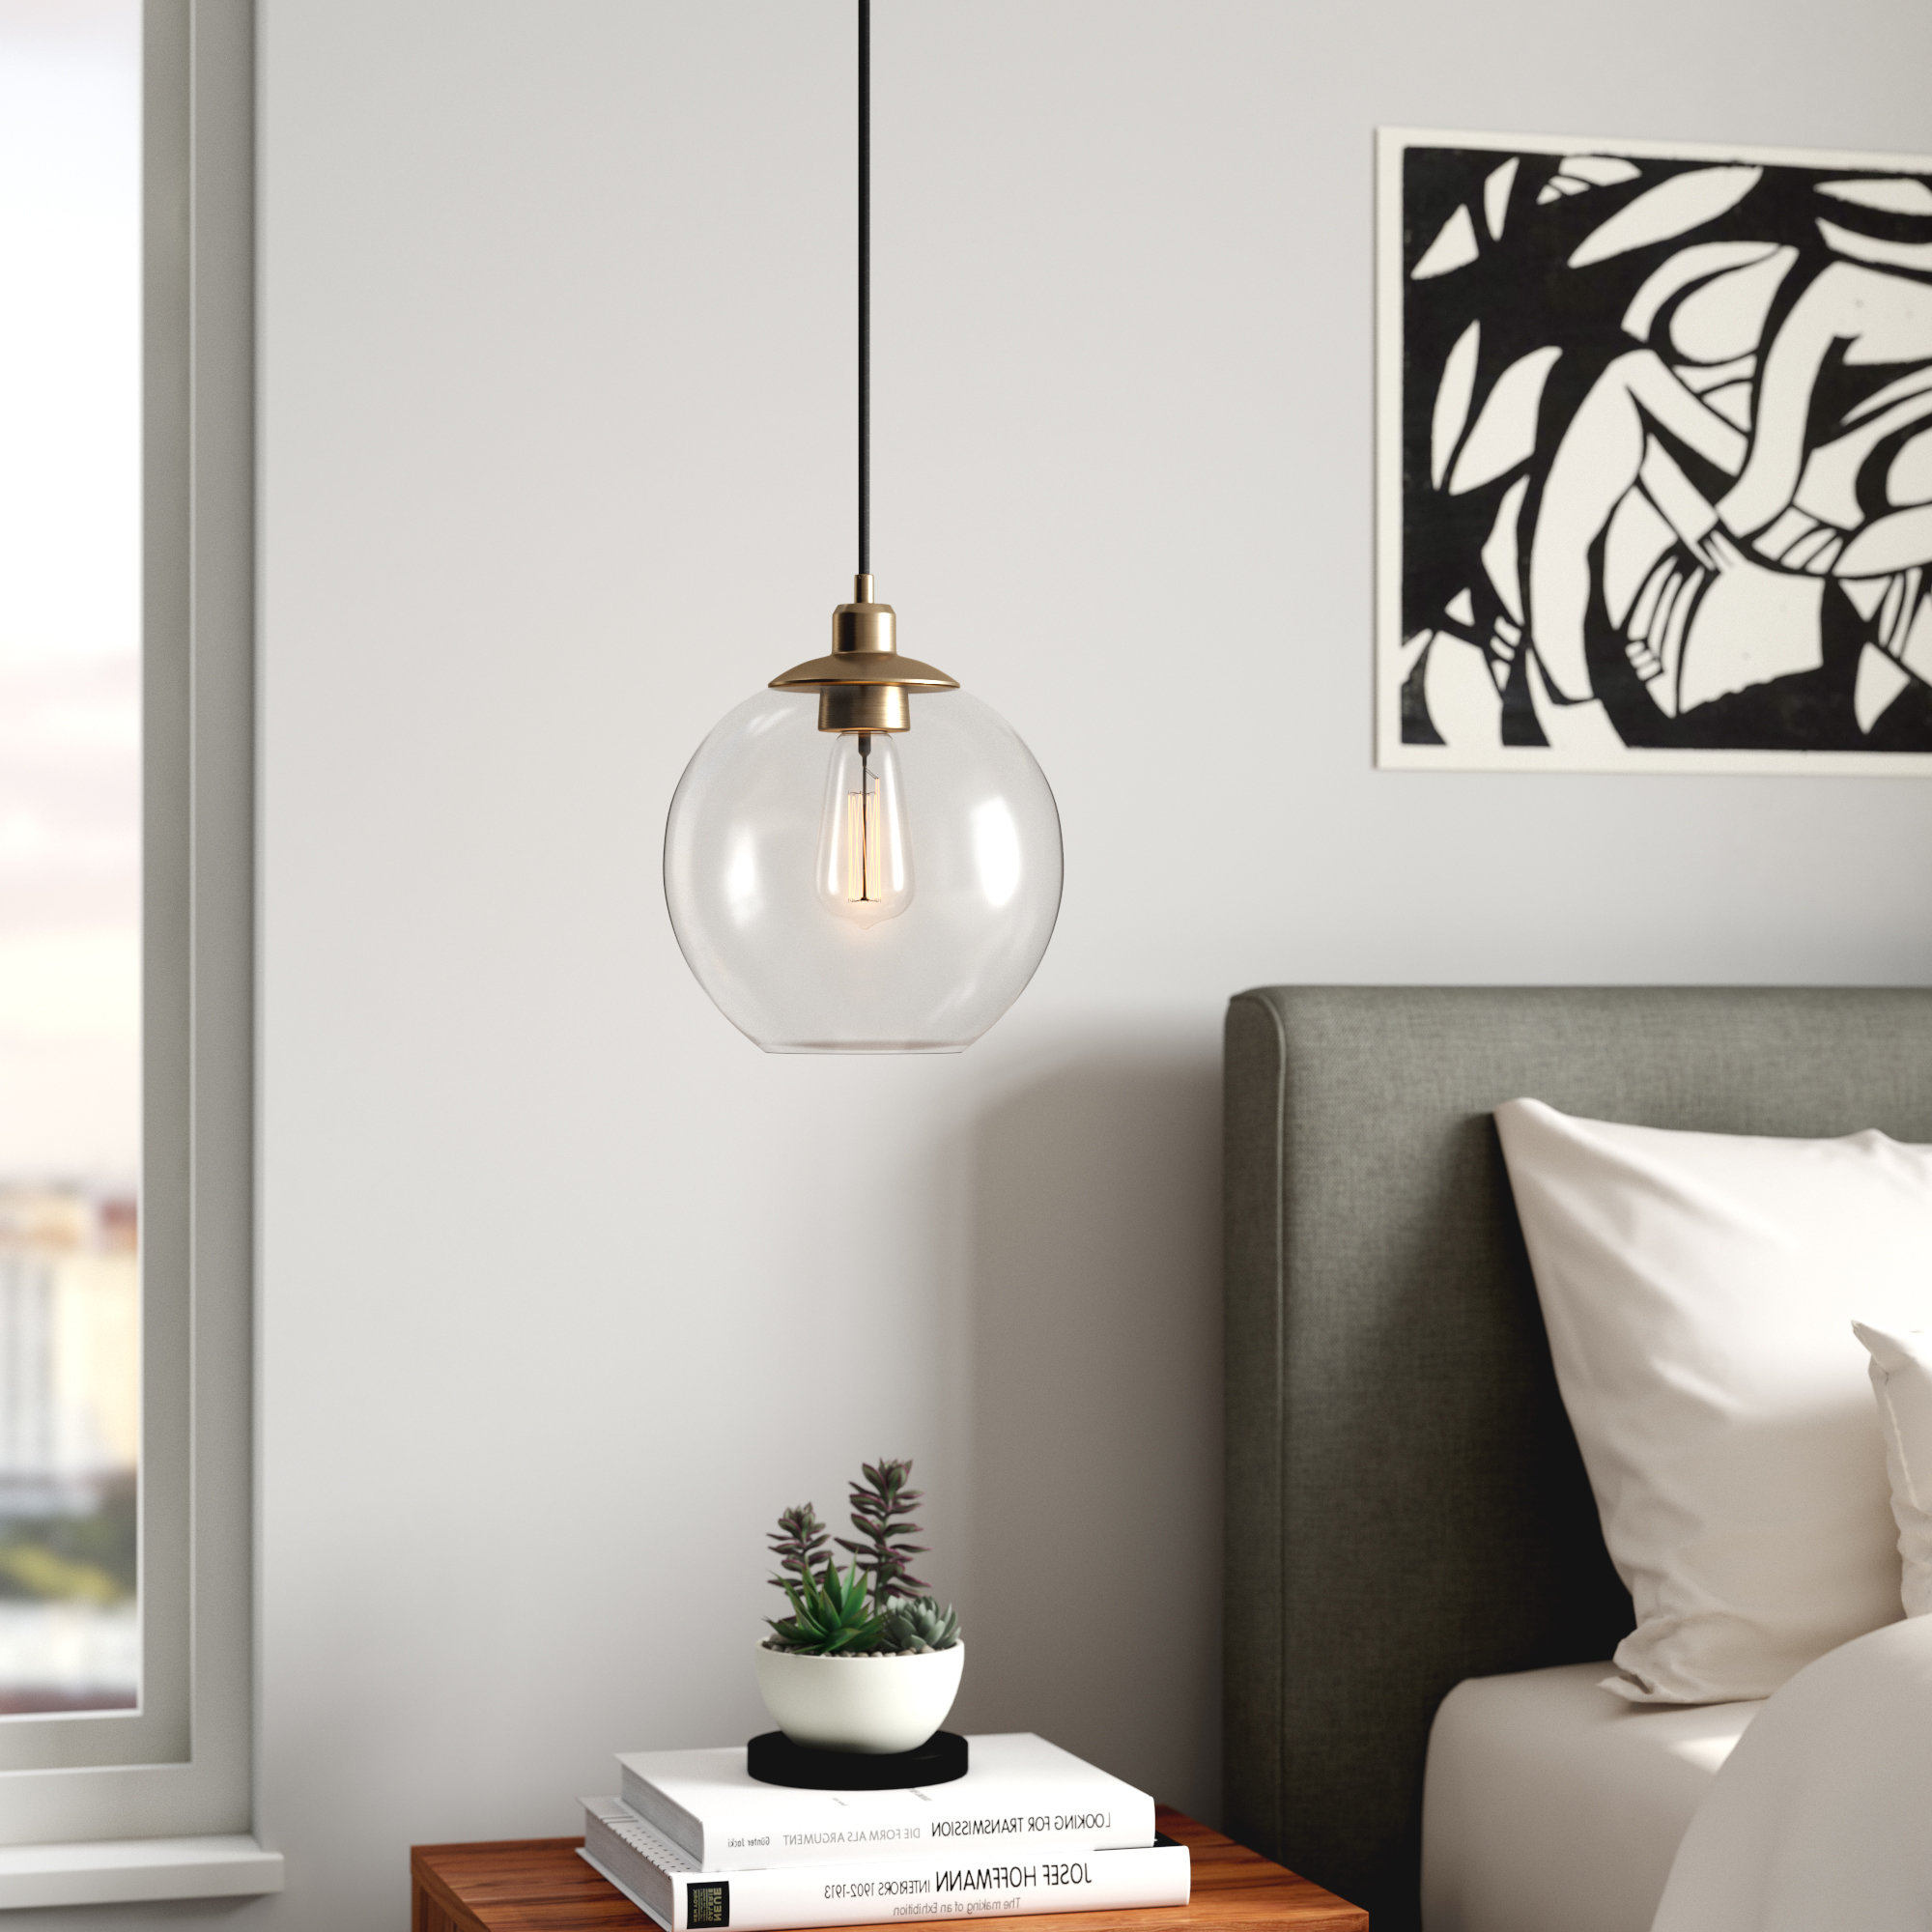 Bundy 1 Light Single Globe Pendants Intended For Well Known Gehry 1 Light Single Globe Pendant (View 3 of 20)